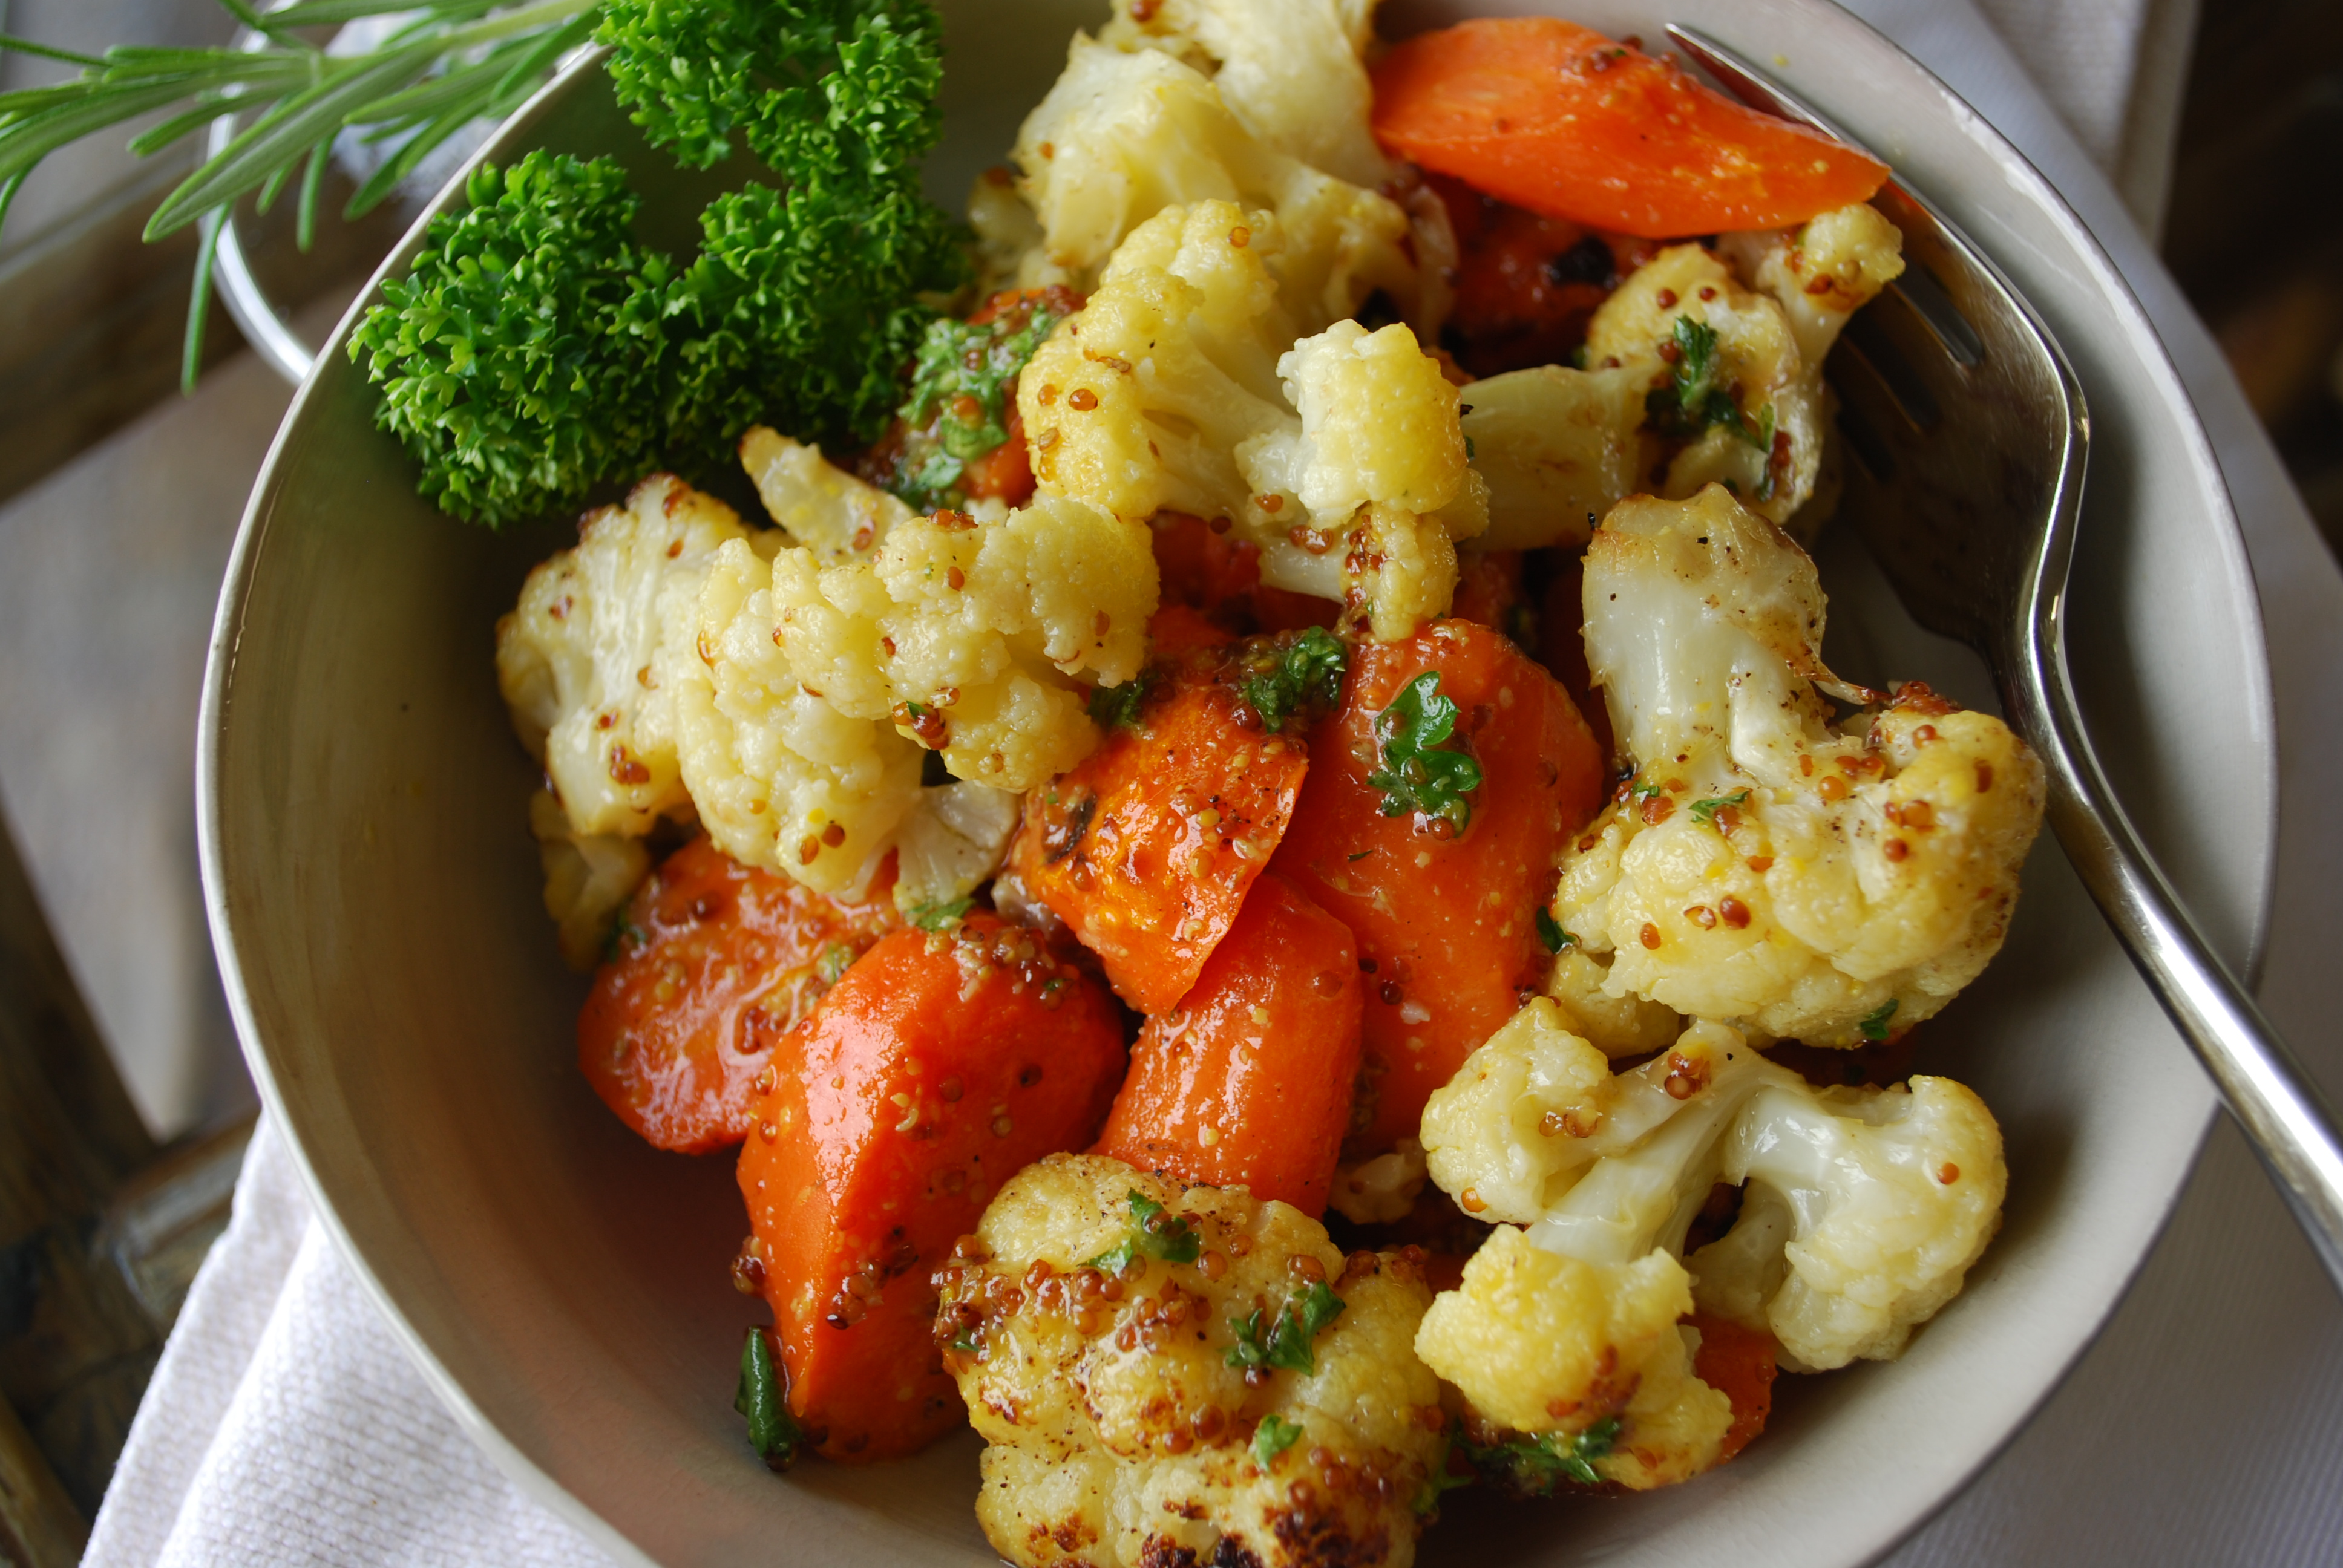 Roasted Cauliflower And Carrots In Mustard Sauce Mediterranean Diet Recipes In 5 Steps Or Less